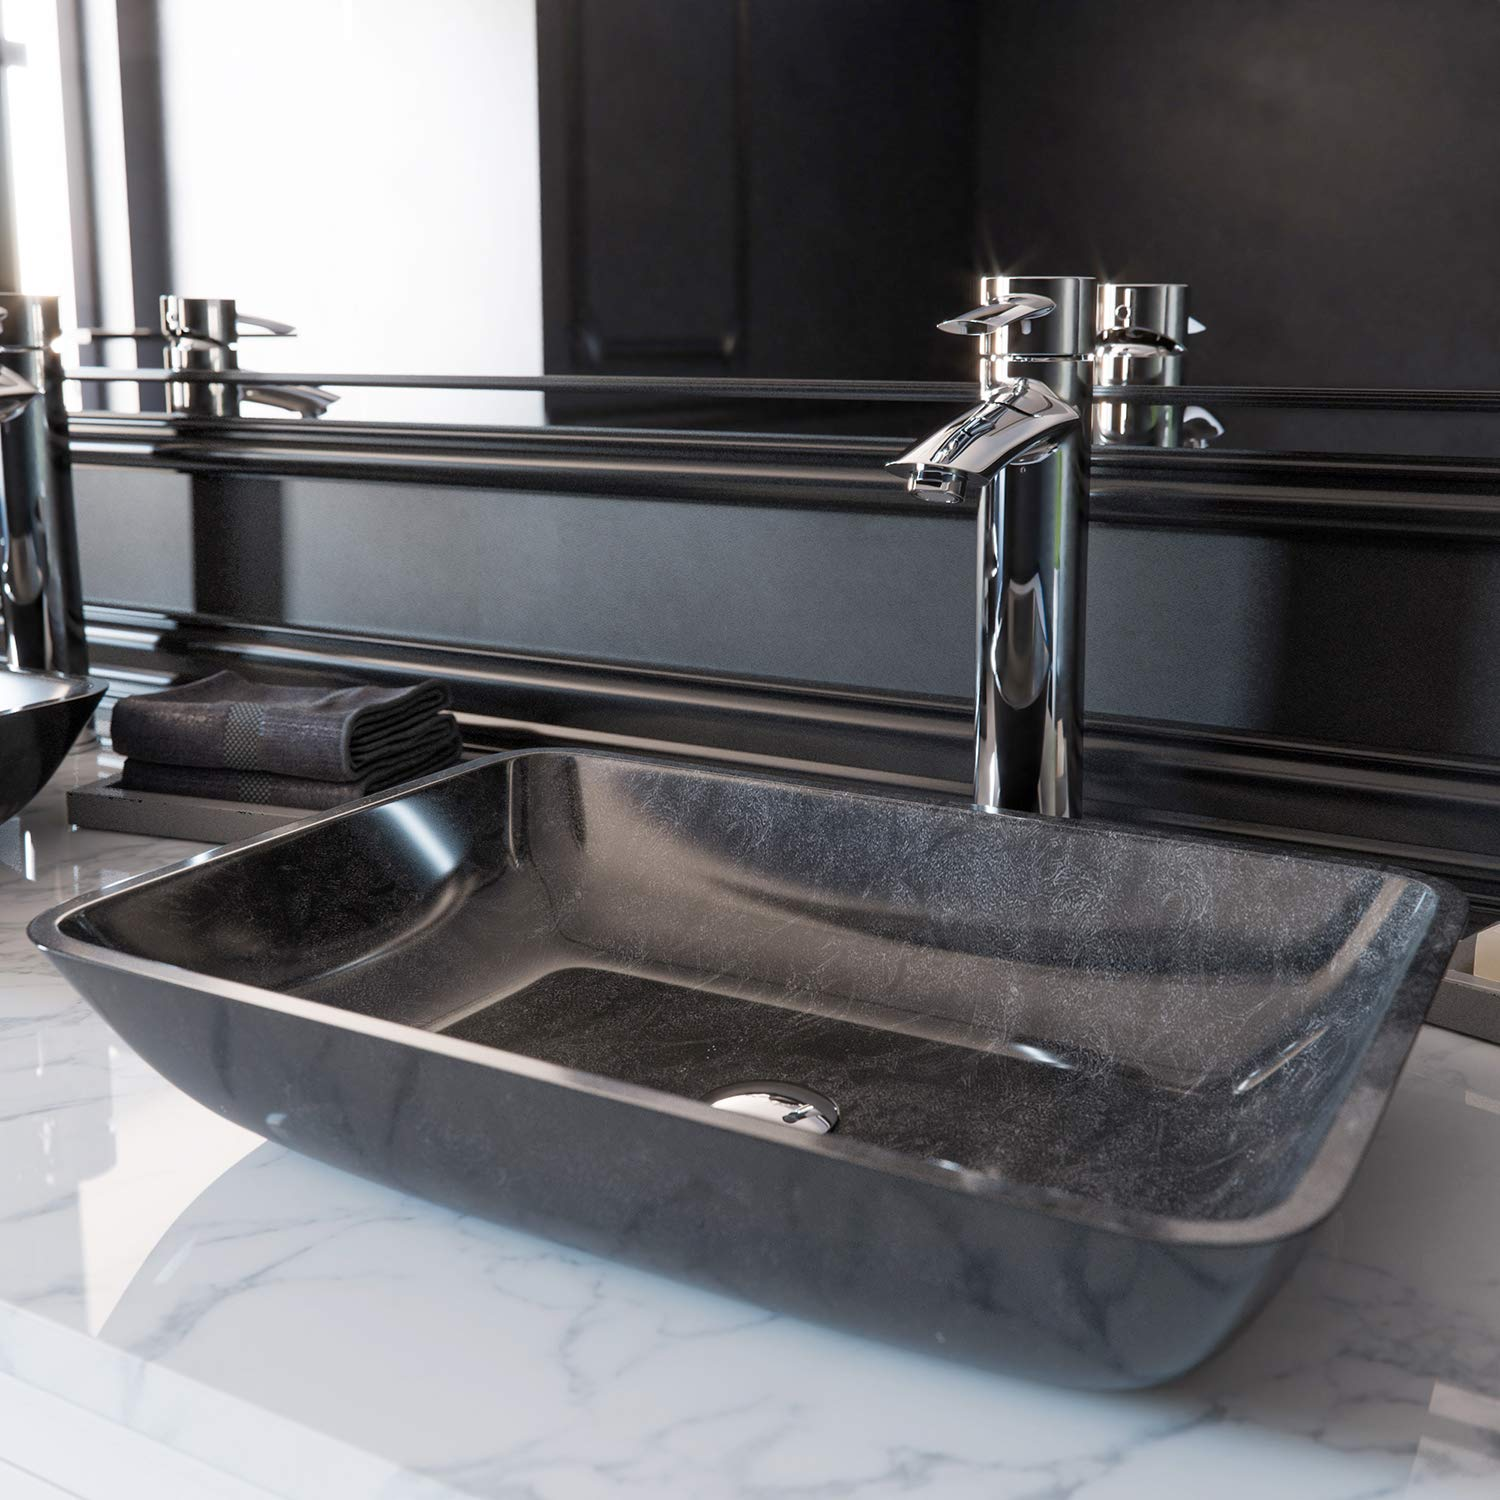 VIGO VG07084 Glass Above counter Rectangular Bathroom Sink, 17.875 x 13 x 4 inches, Gray Onyx